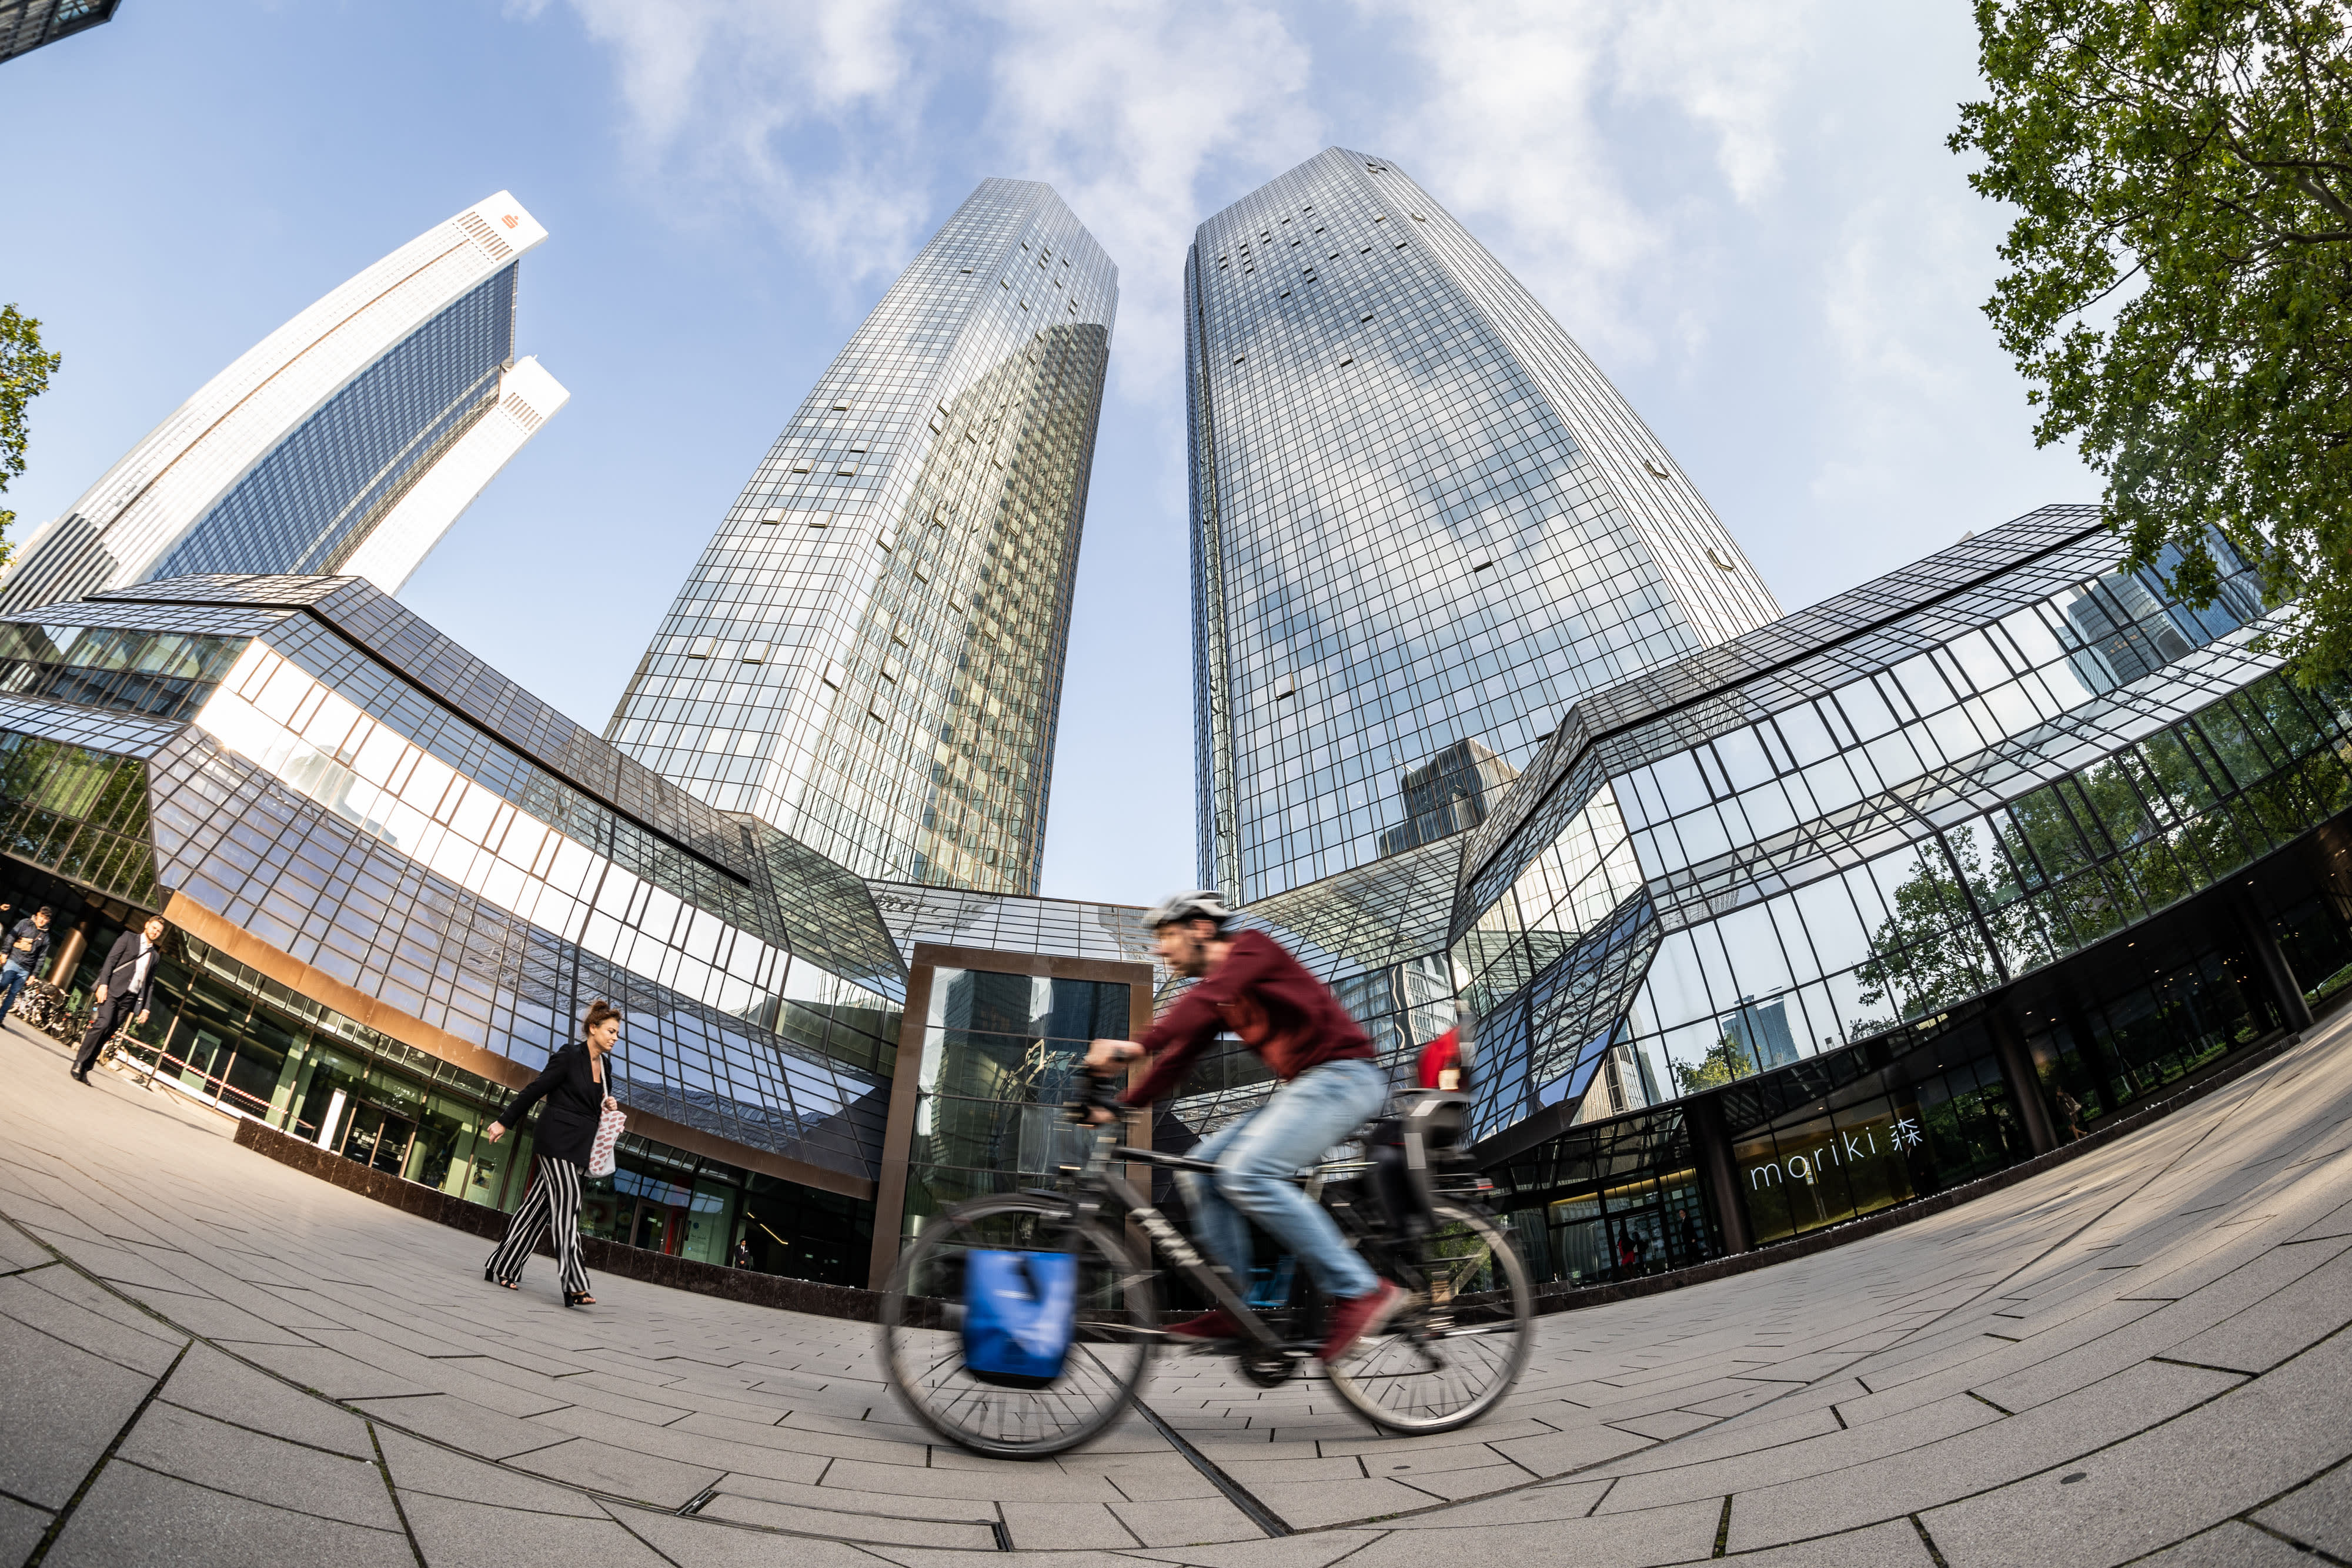 Deutsche Bank buys stake in a fintech company months after major restructuring